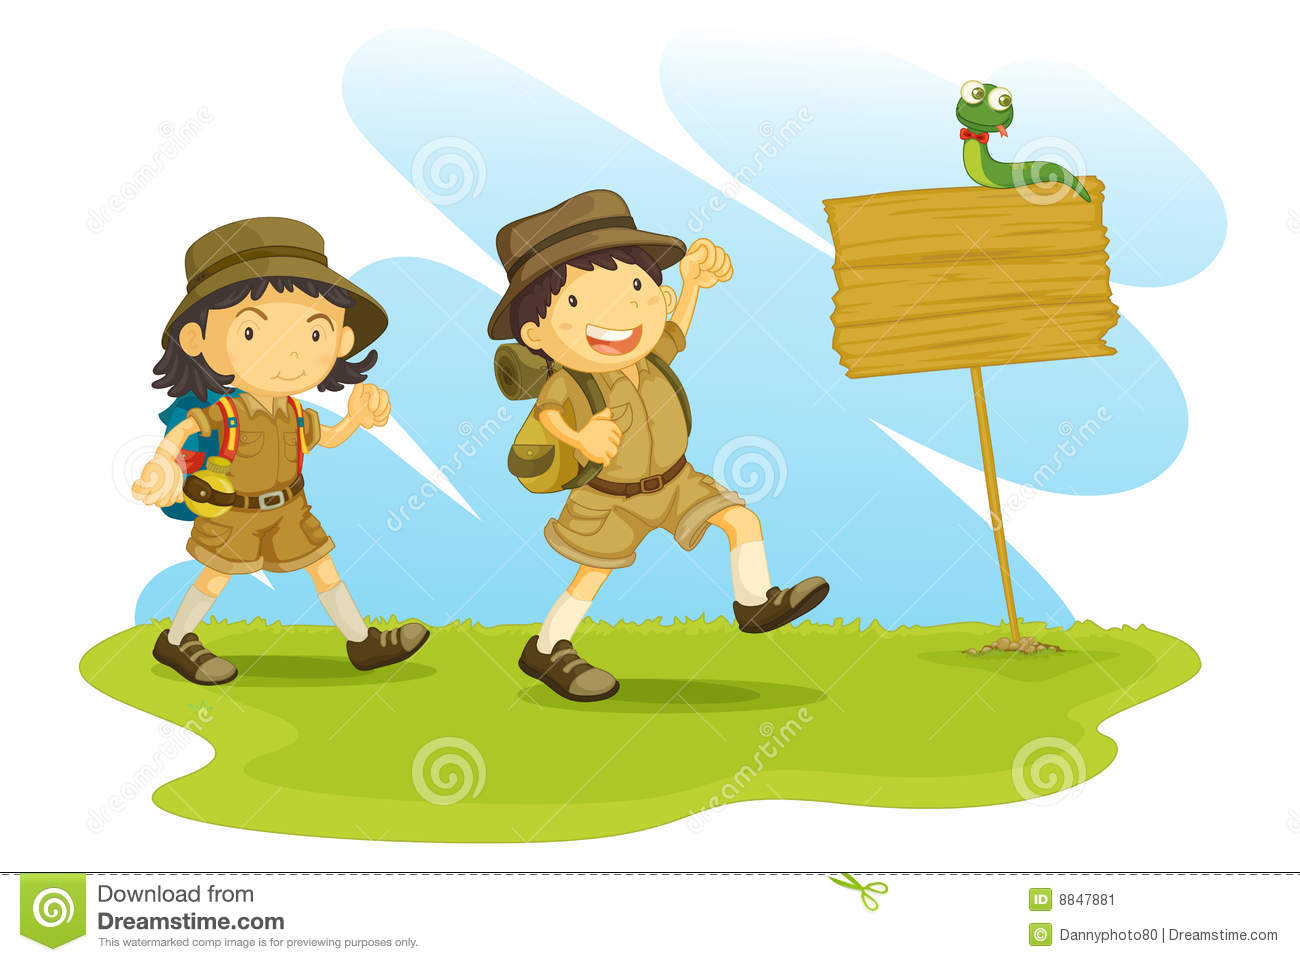 Kids going for a nature walk clipart graphic stock Nature walk clipart 4 » Clipart Station graphic stock